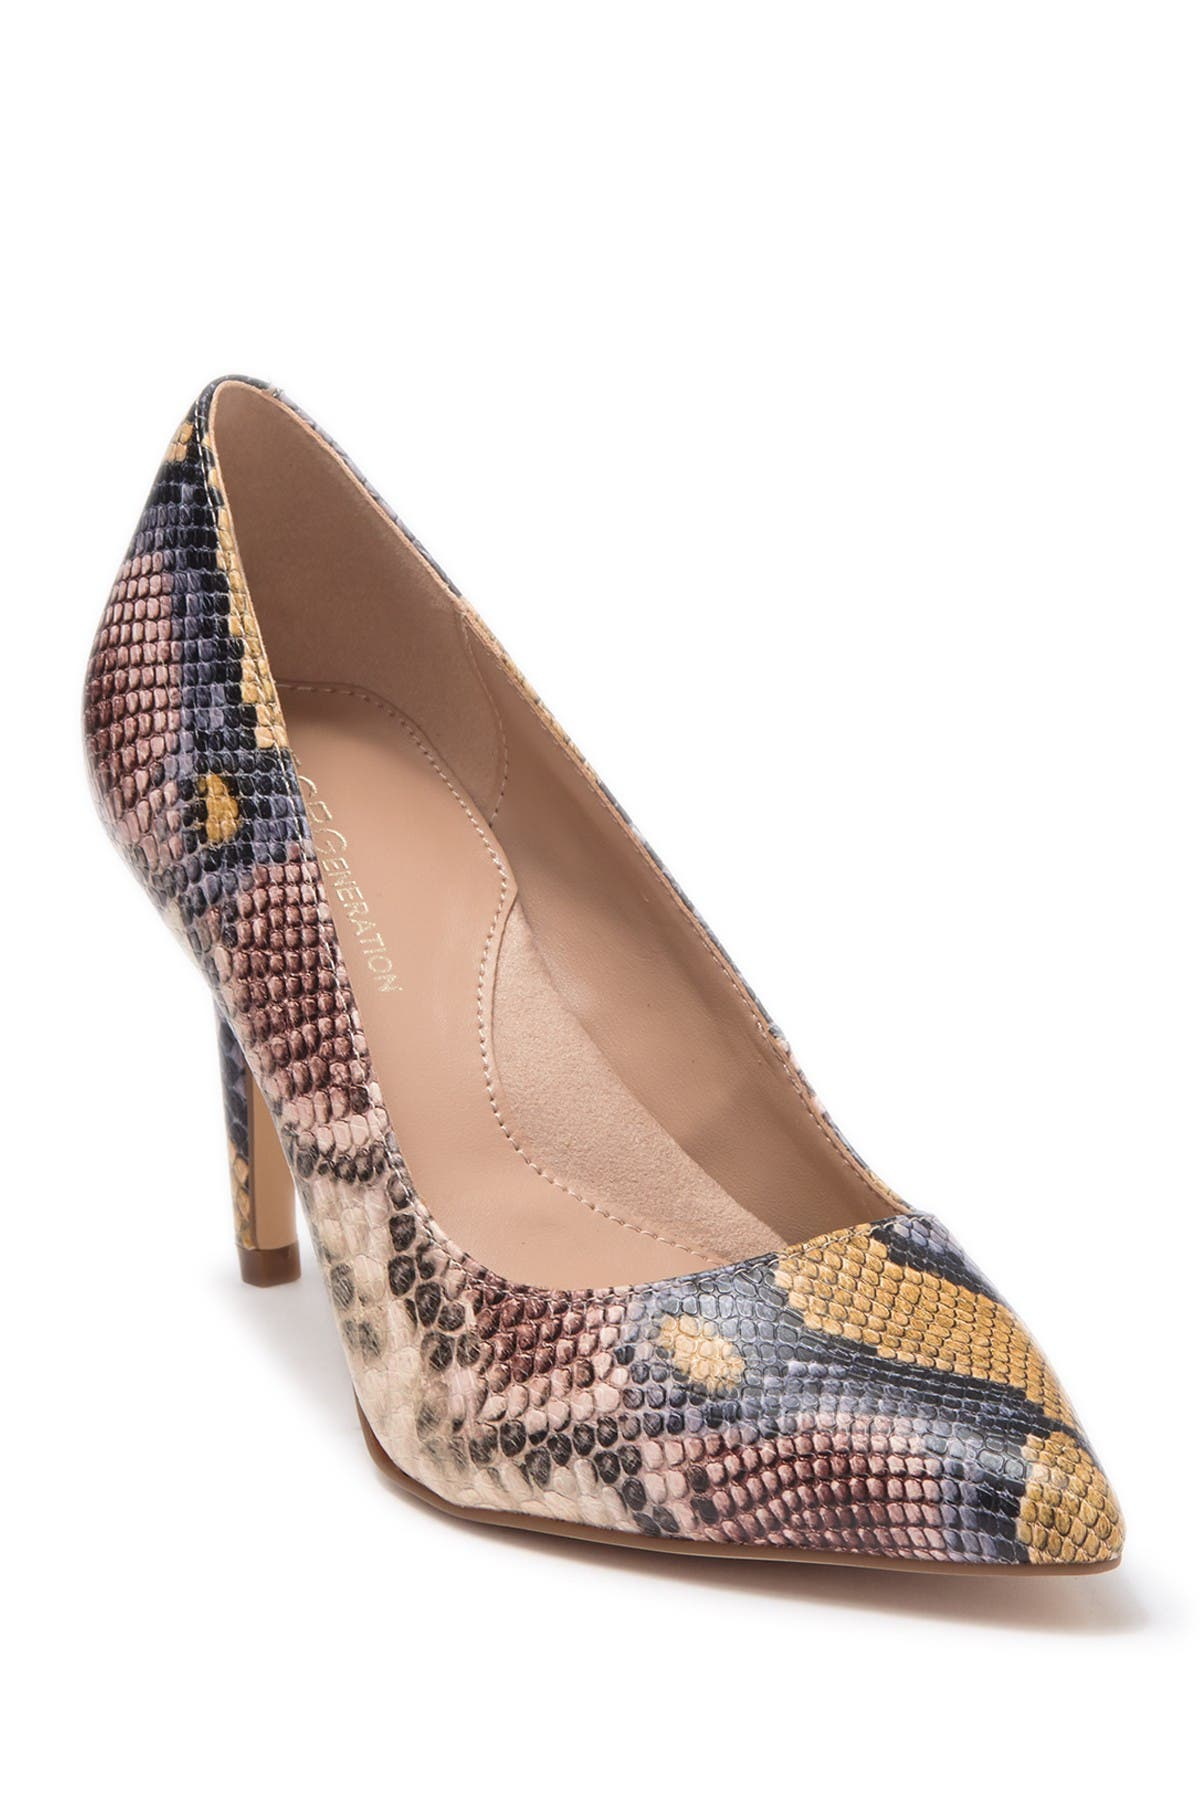 Image of BCBG Middea Snakeskin Embossed Pointed Toe Pump